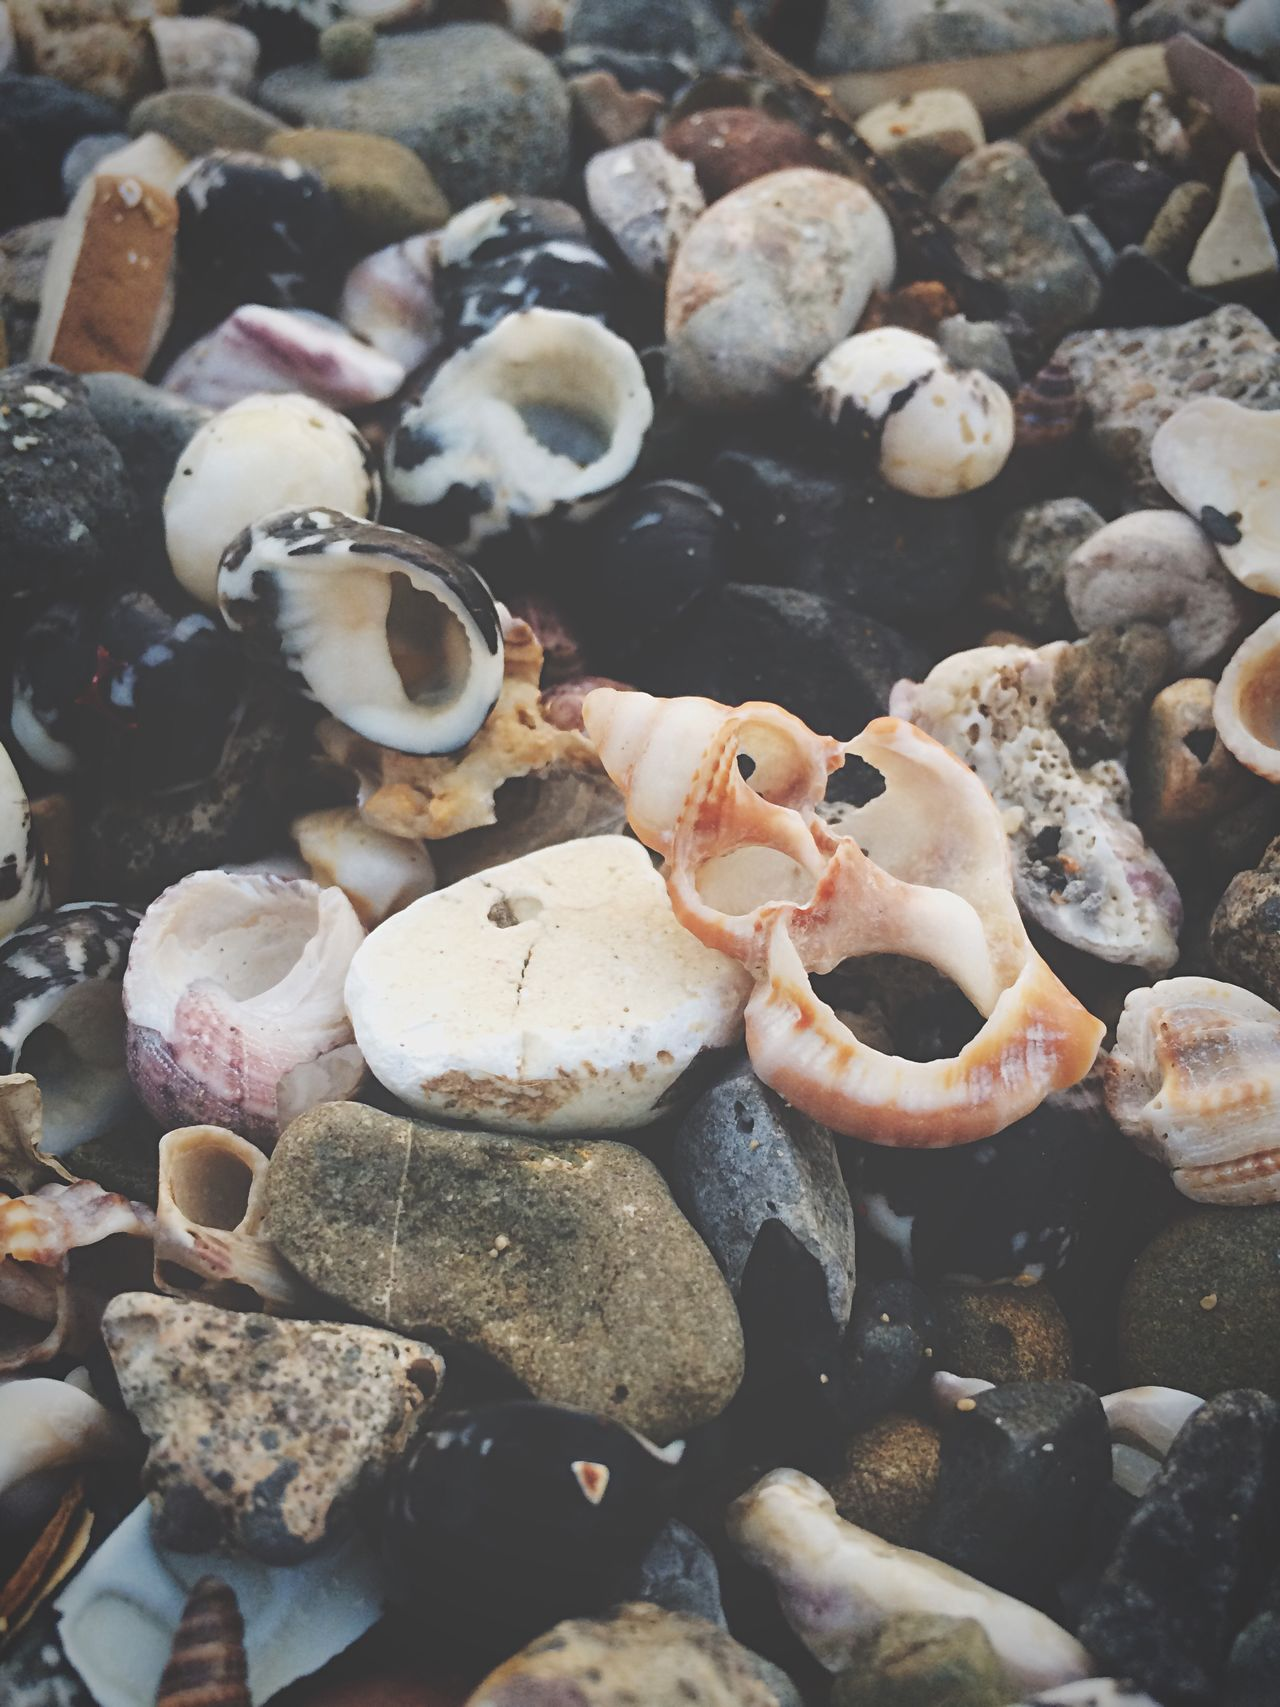 Life under. Shells Beach Rocks Stones Closeup Photooftheday Photography Mumbai India Placesinindia Natgeo Nature Broken Cracked